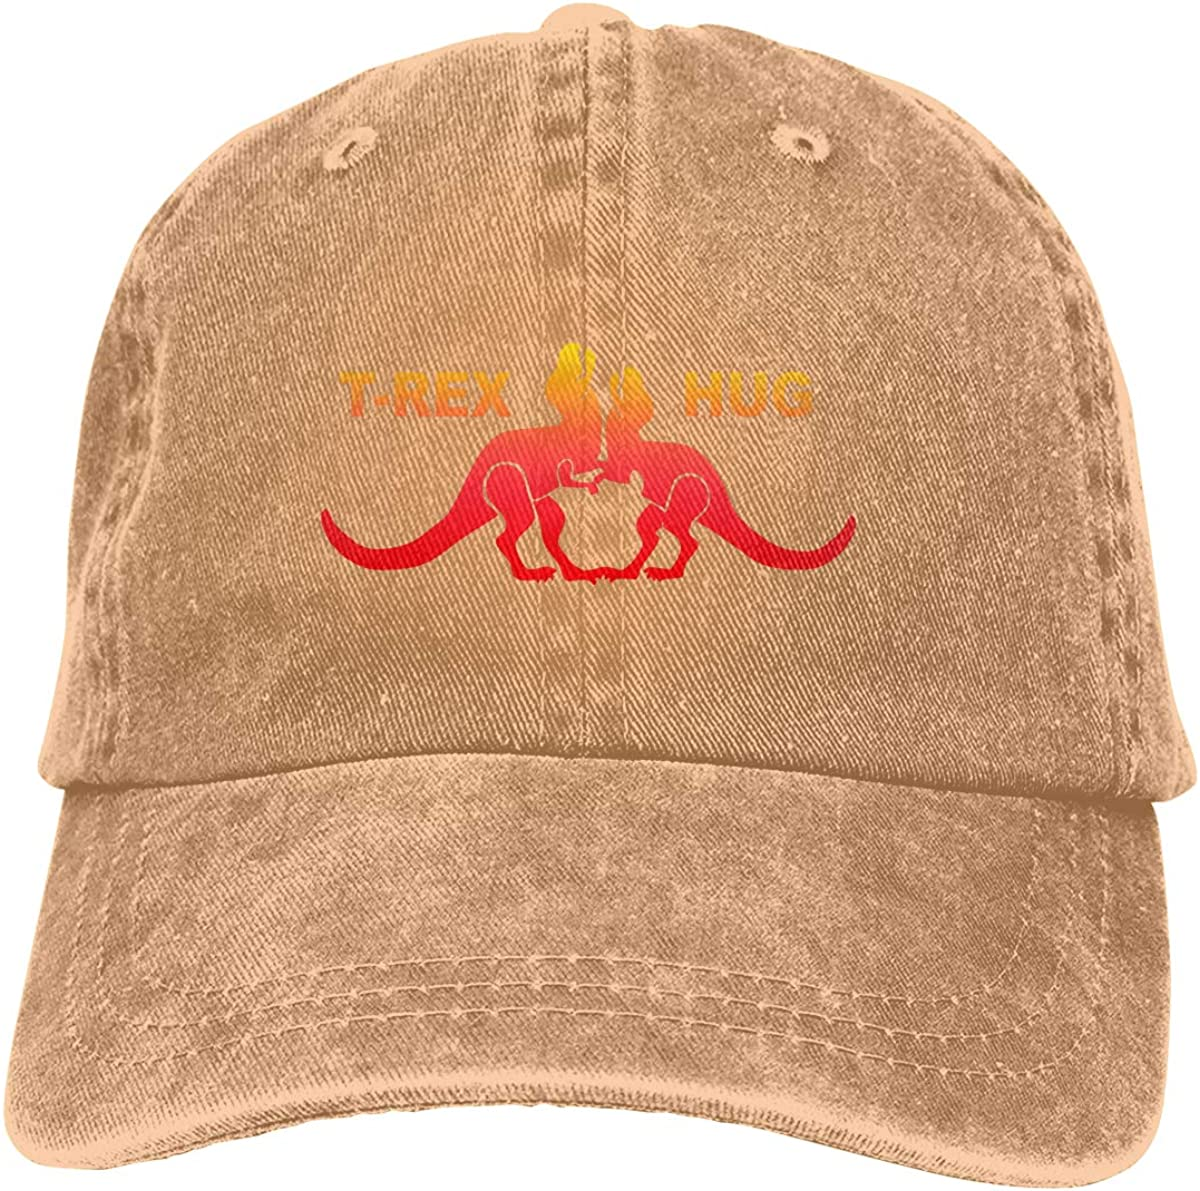 T Rex Hug Novelty Unisex Washed Cap Adjustable Dads Denim Stetson Hat